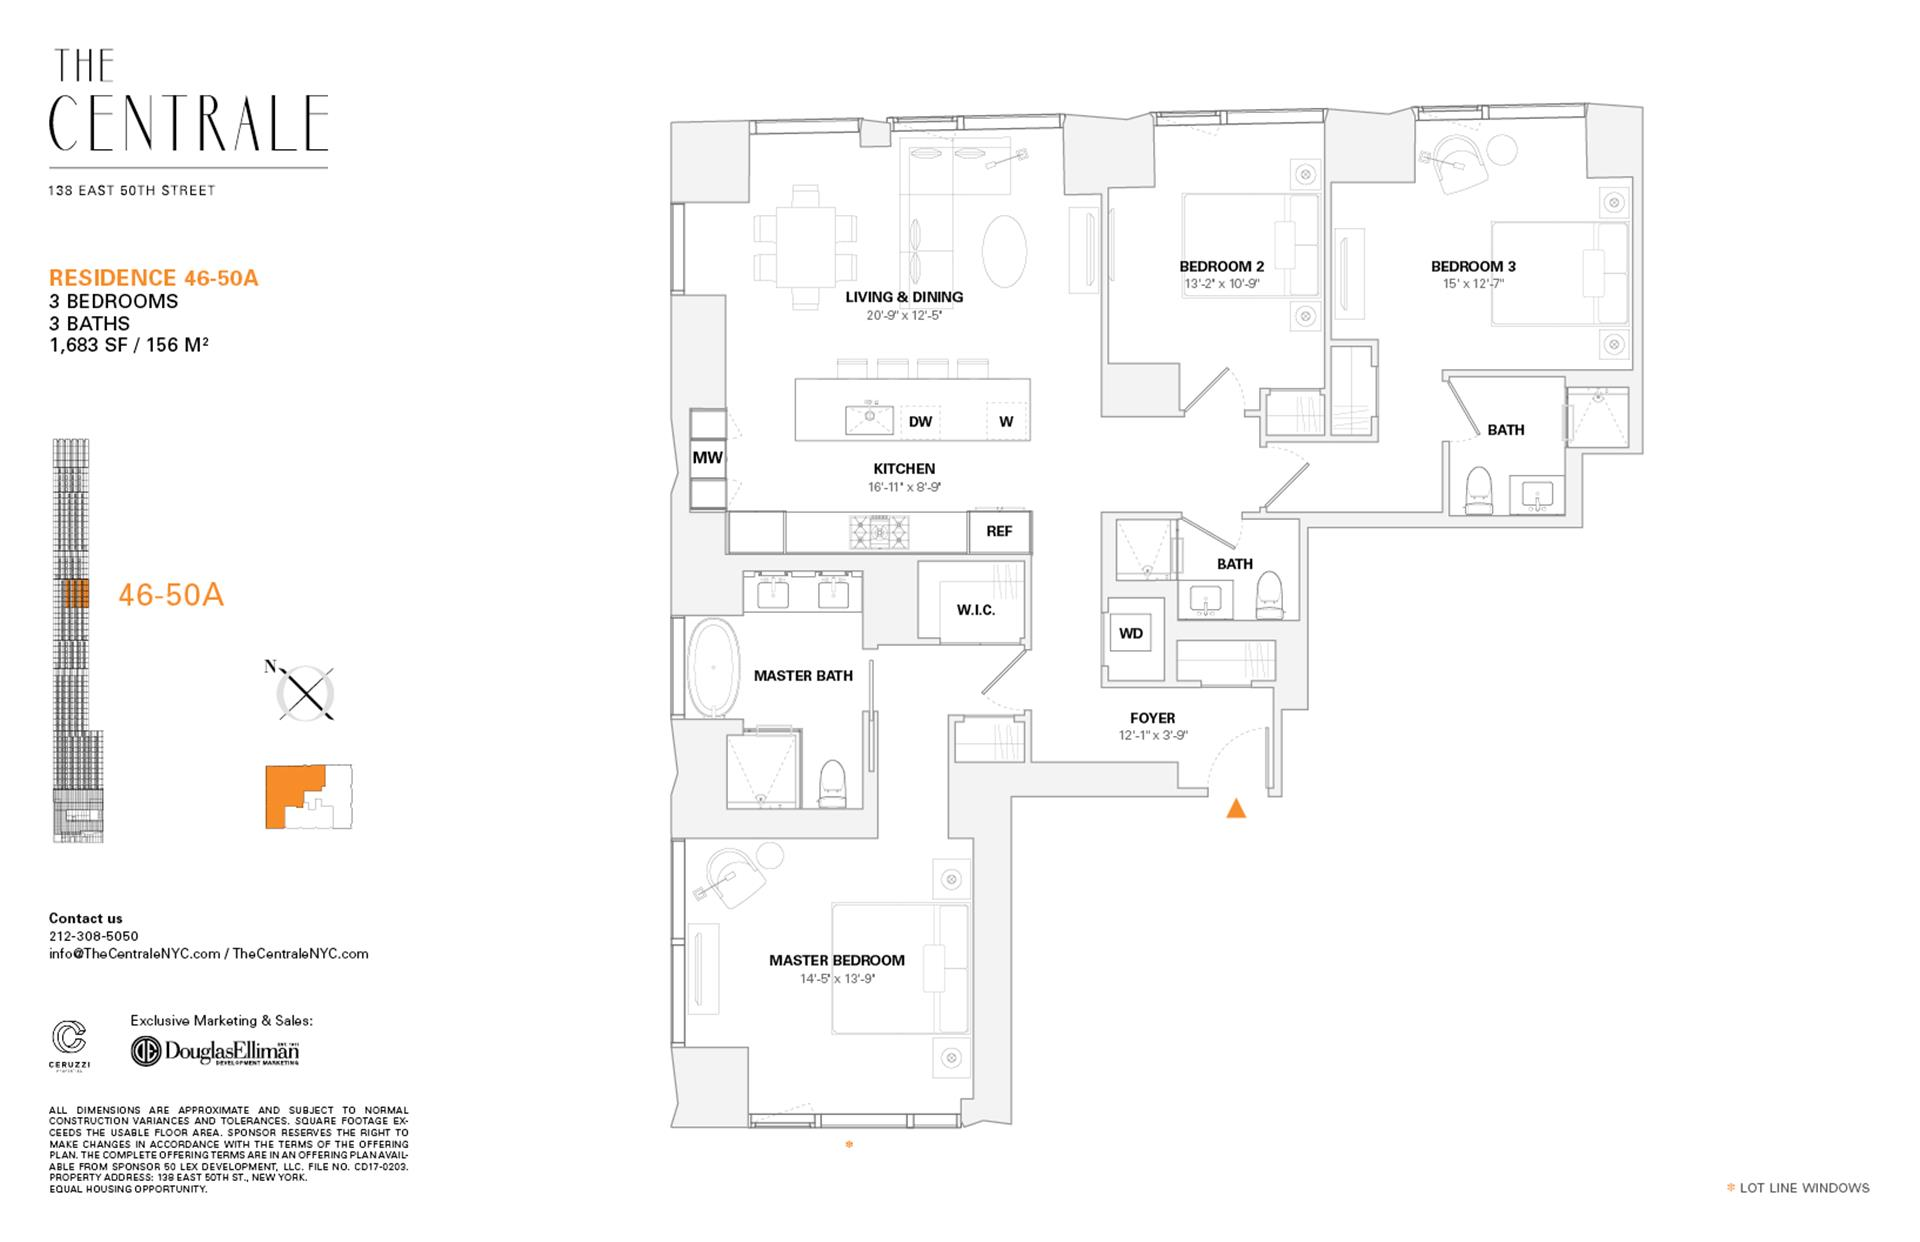 Floor plan of The Centrale, 138 East 50th St, 47A - Midtown, New York